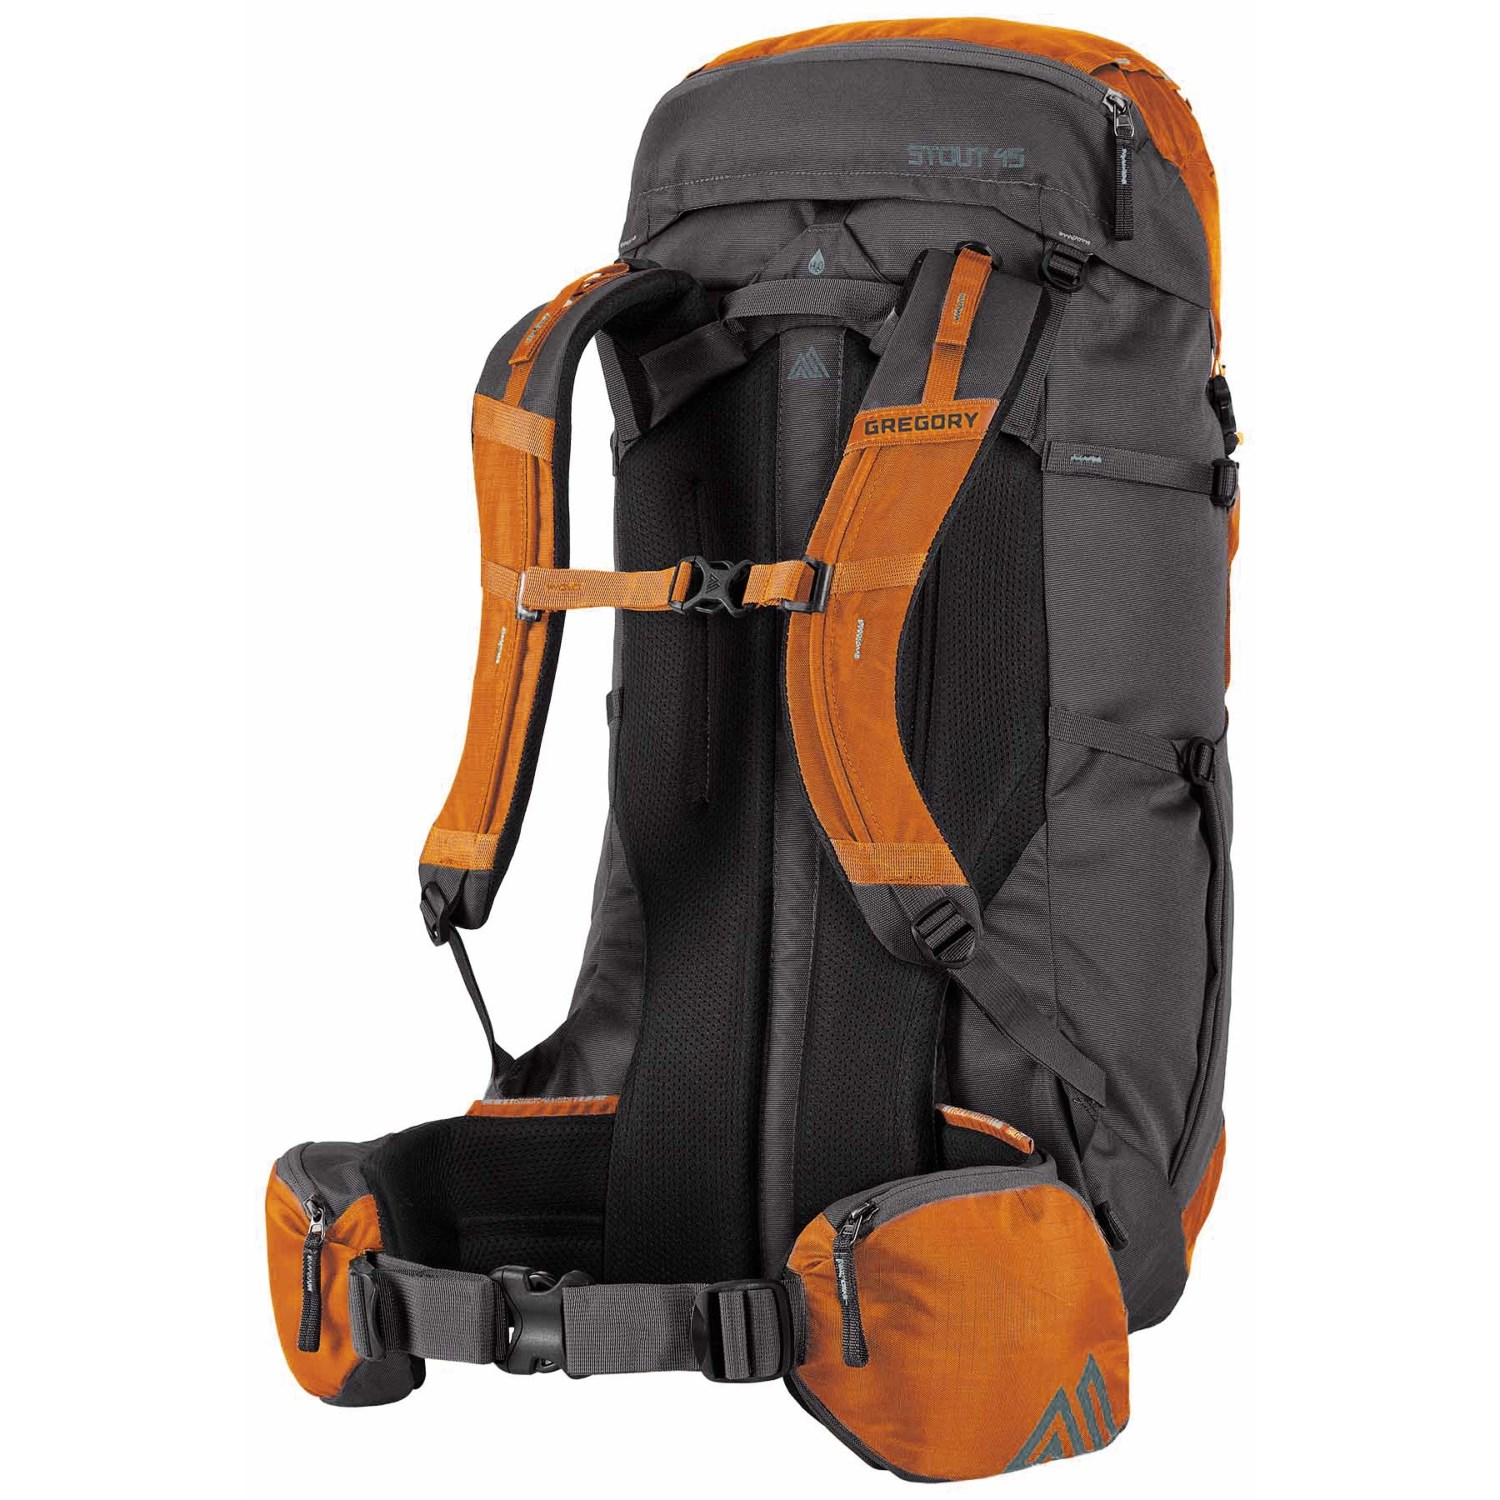 Gregory Stout 45 Backpack - Save 29%